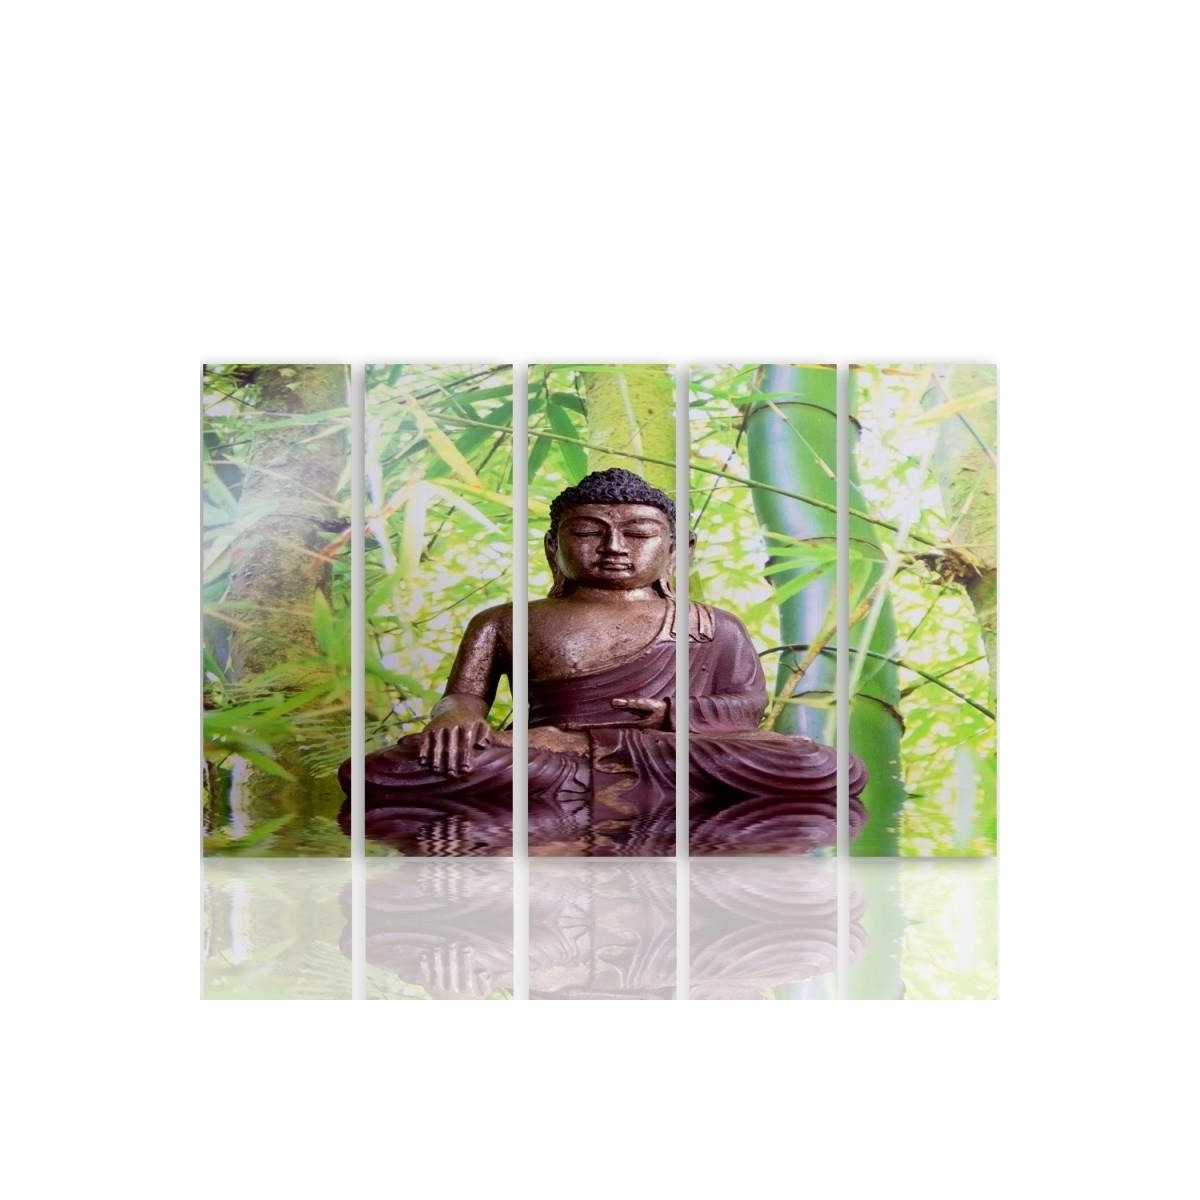 Five Part Picture On Canvas, Pentaptych, Type C, The Buddha On The Background Of Bamboo100x150